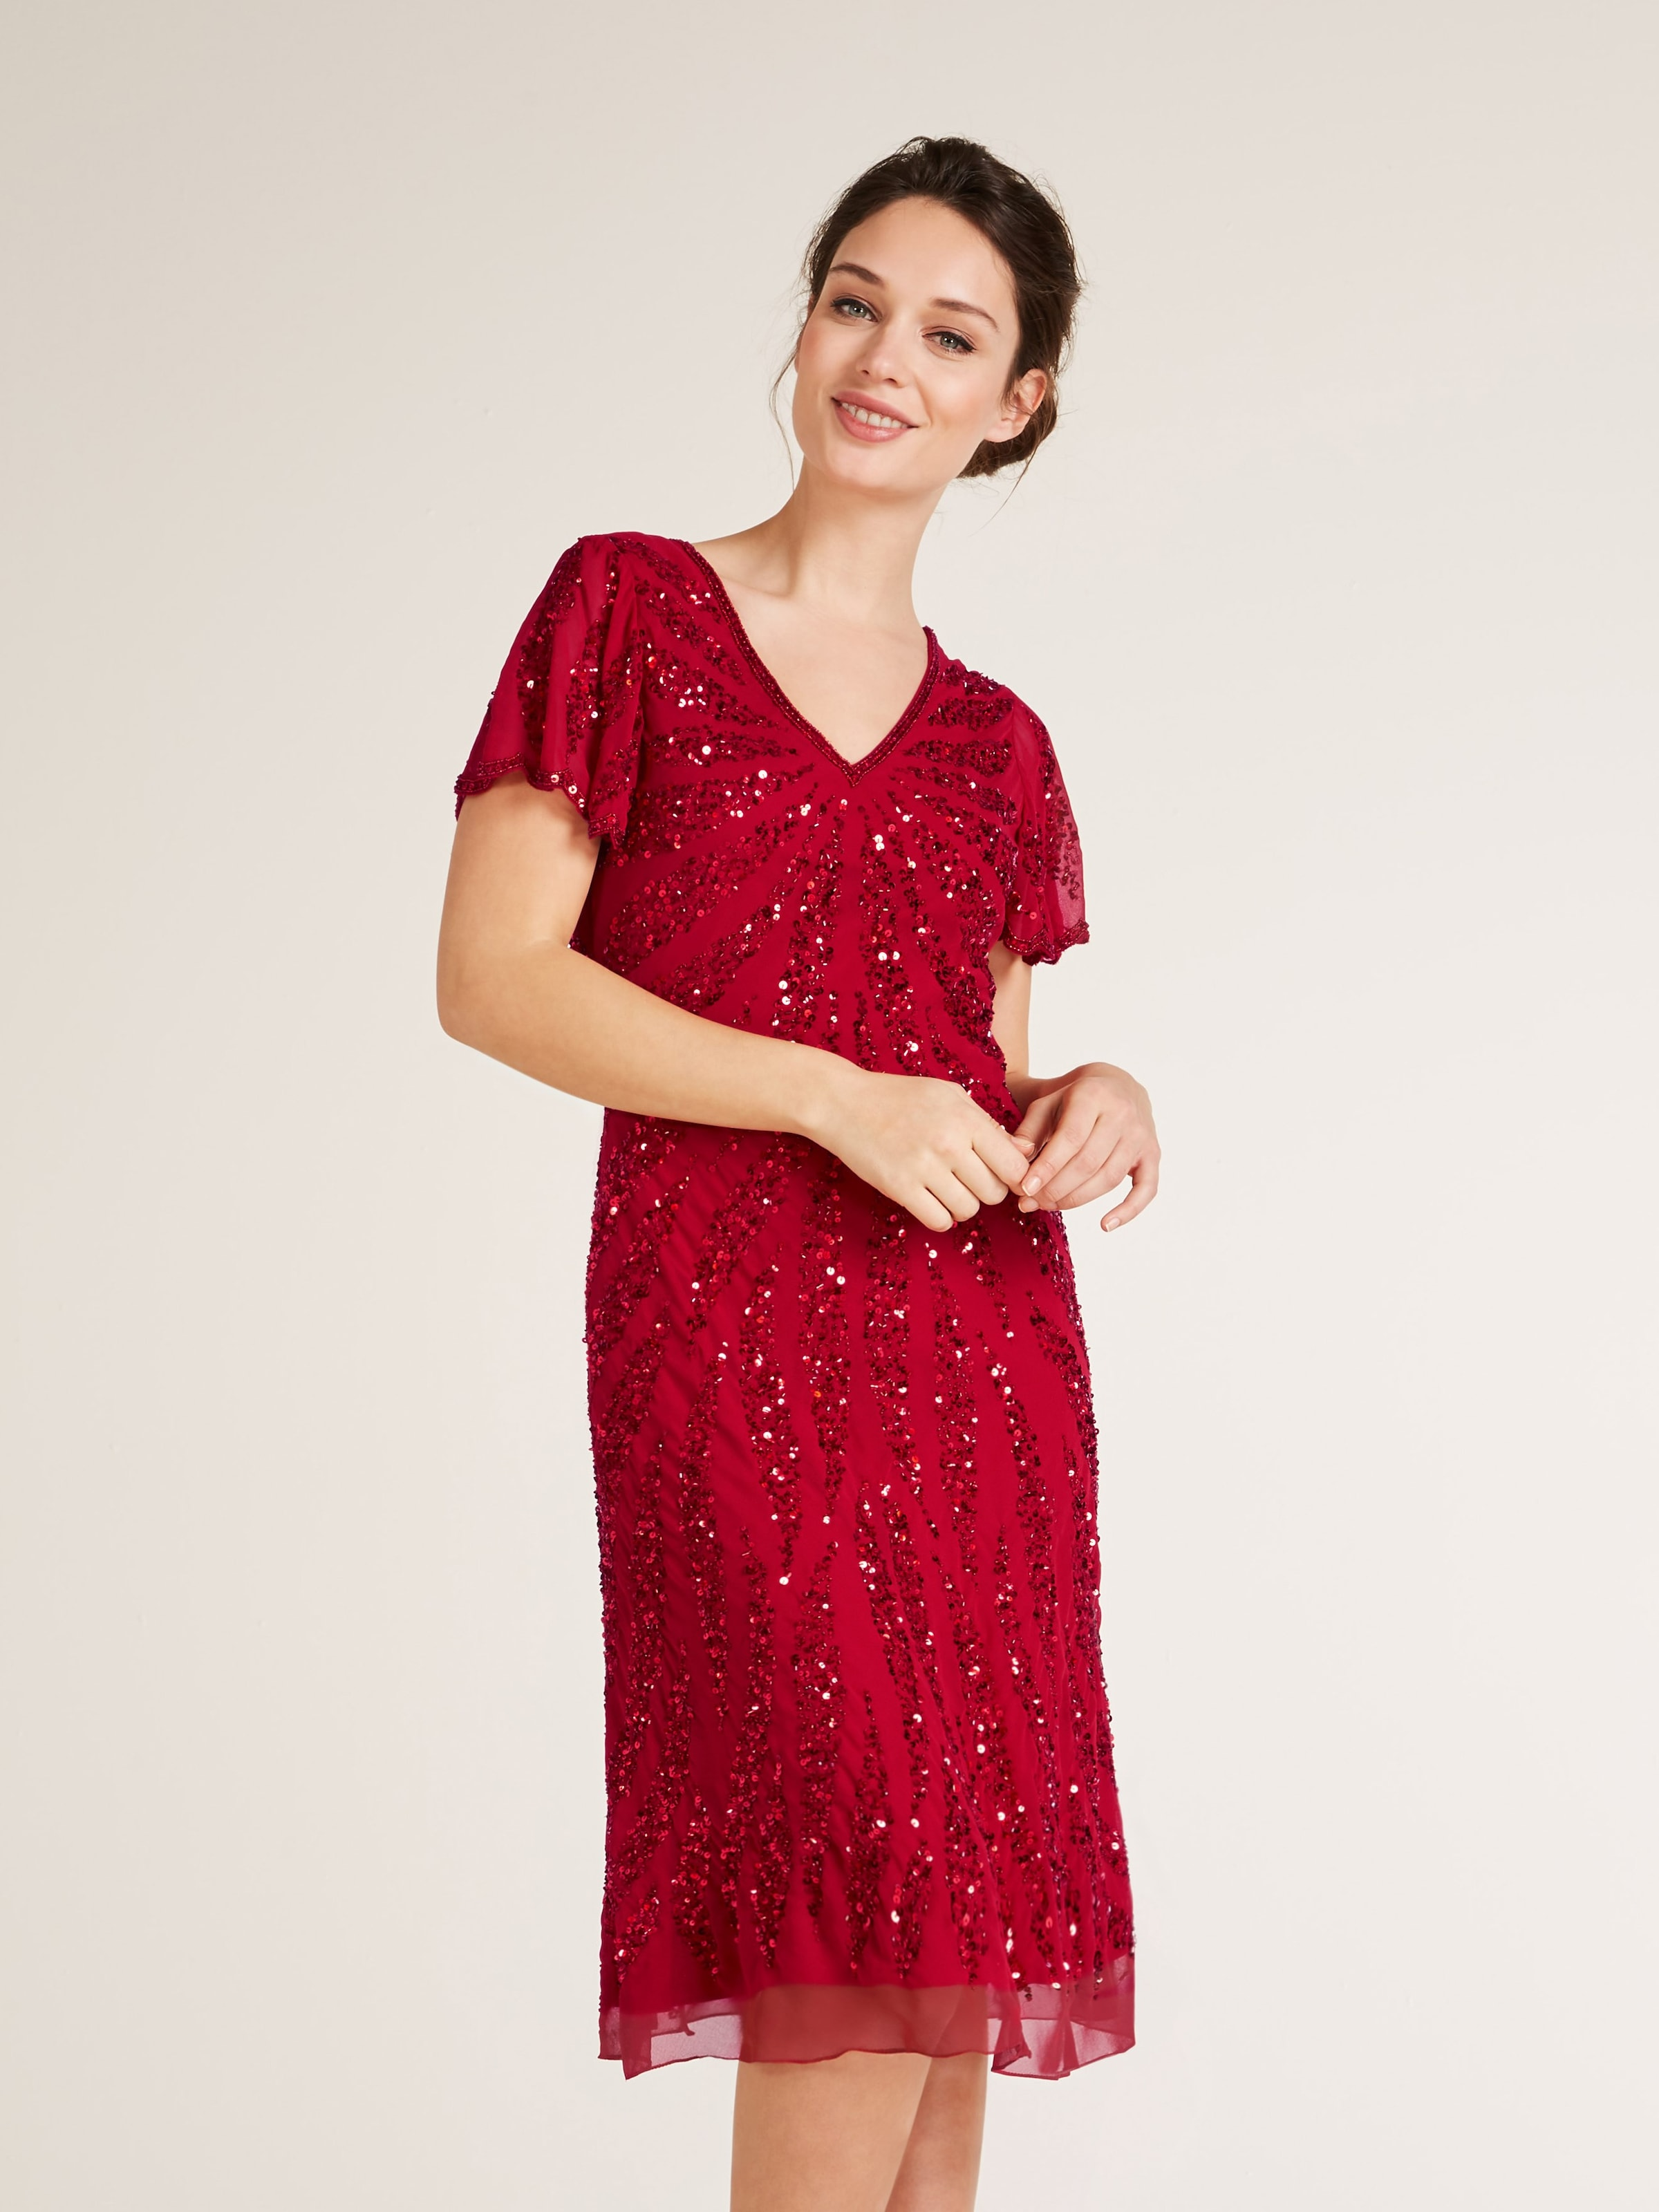 Cocktailkleid Rot Heine Cocktailkleid Rot Heine Heine In In UMpSGjLqVz